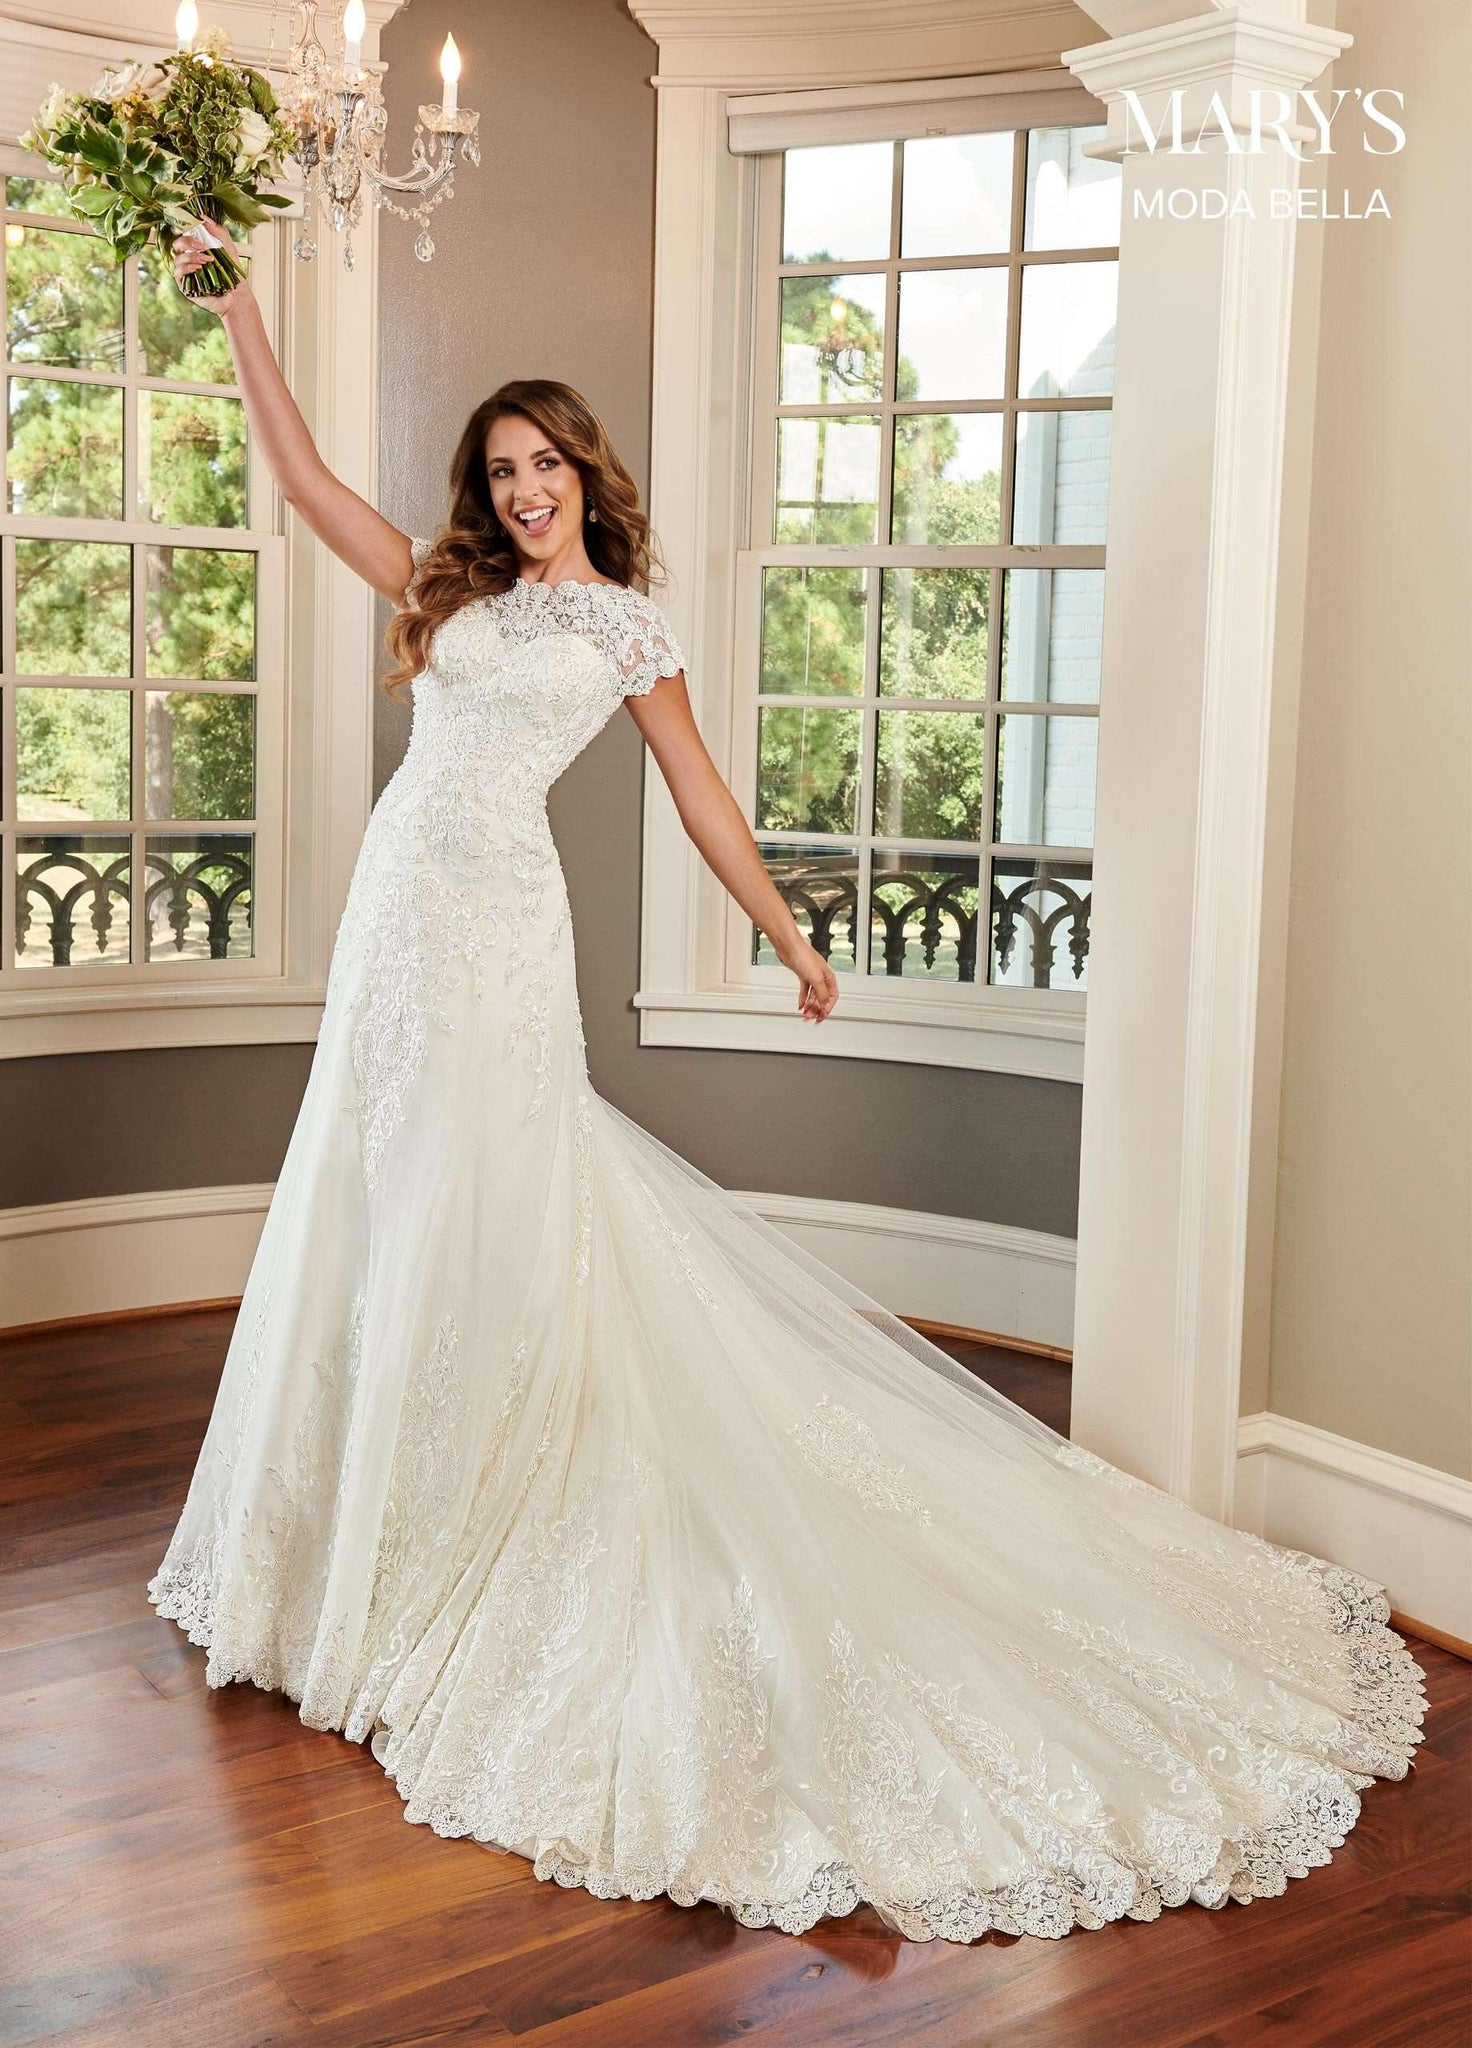 Bella PLUS - Adore Bridal and Occasion Wear